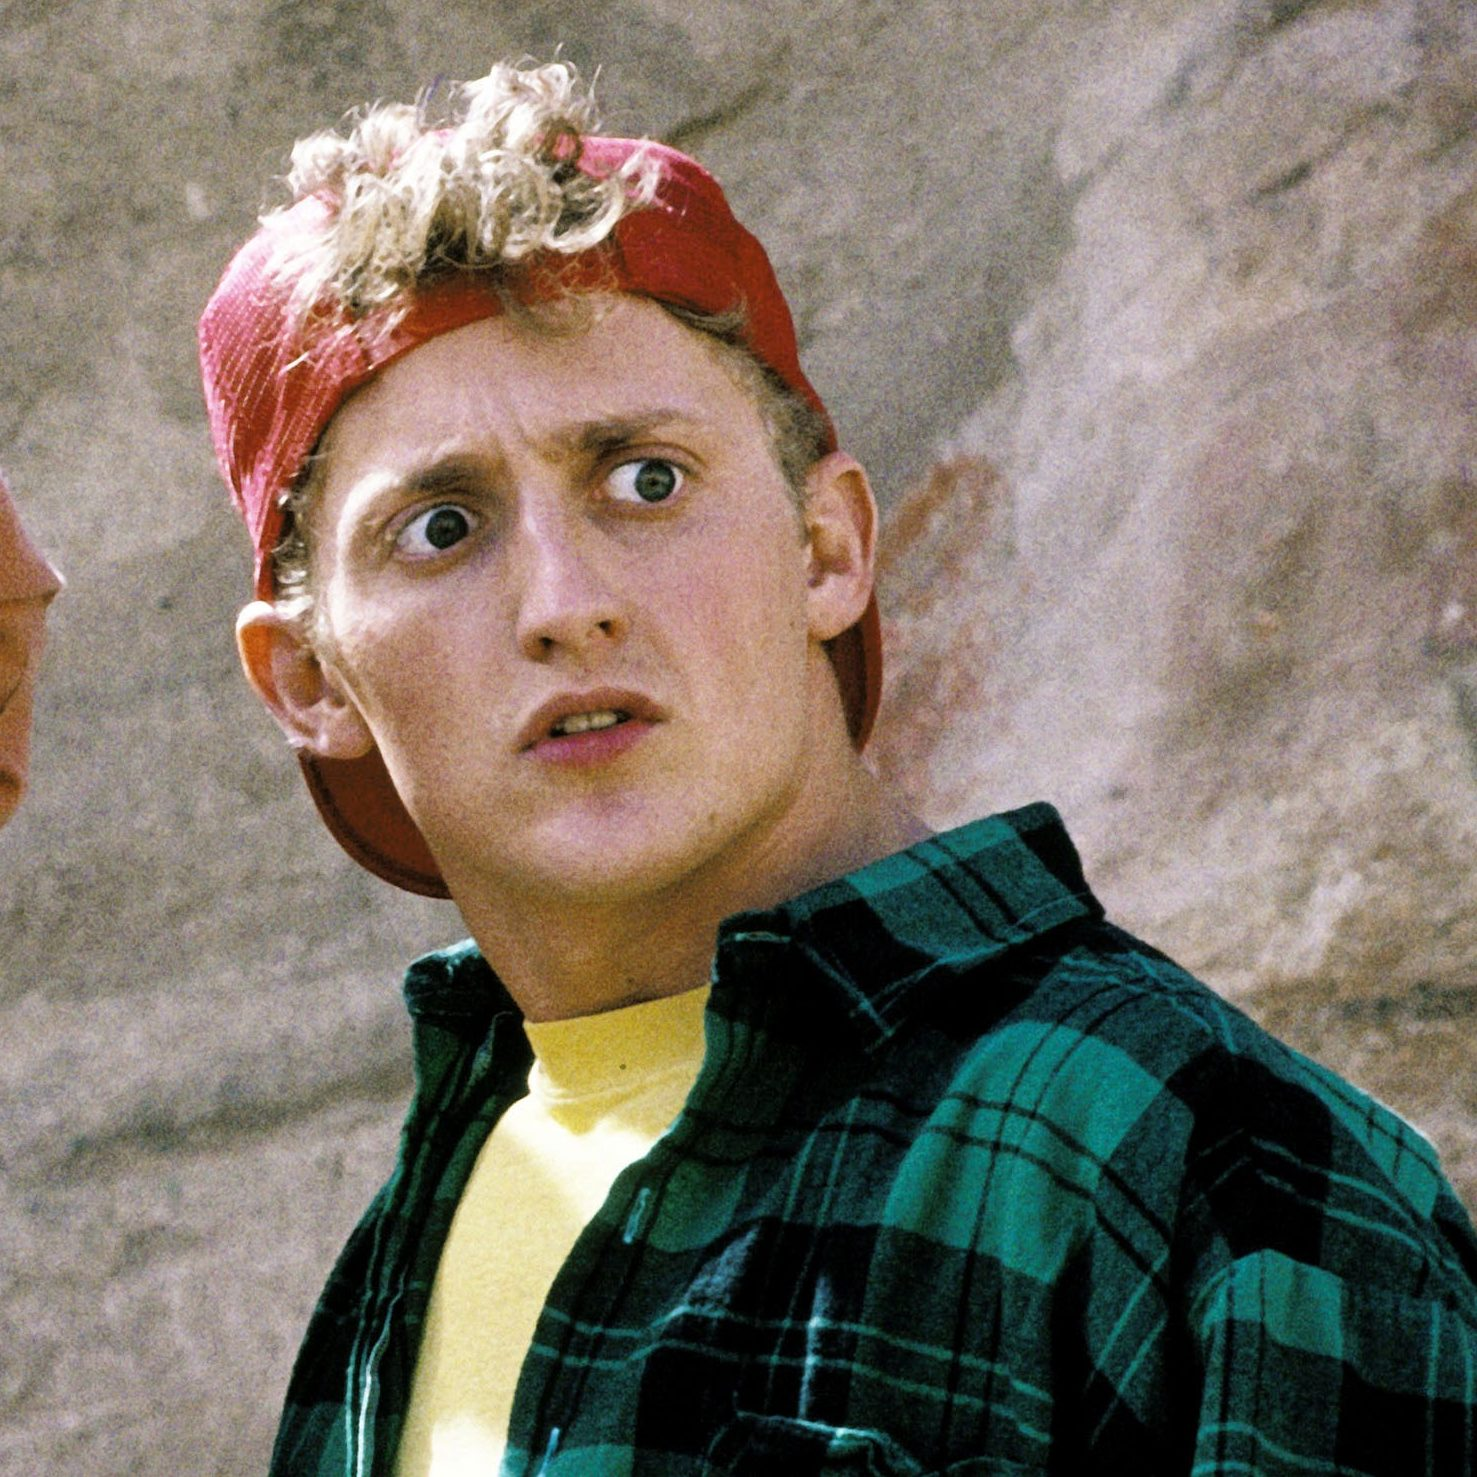 rexfeatures 5883268w e1599640519809 25 Totally Non-Heinous Facts About Bill & Ted's Excellent Adventure!